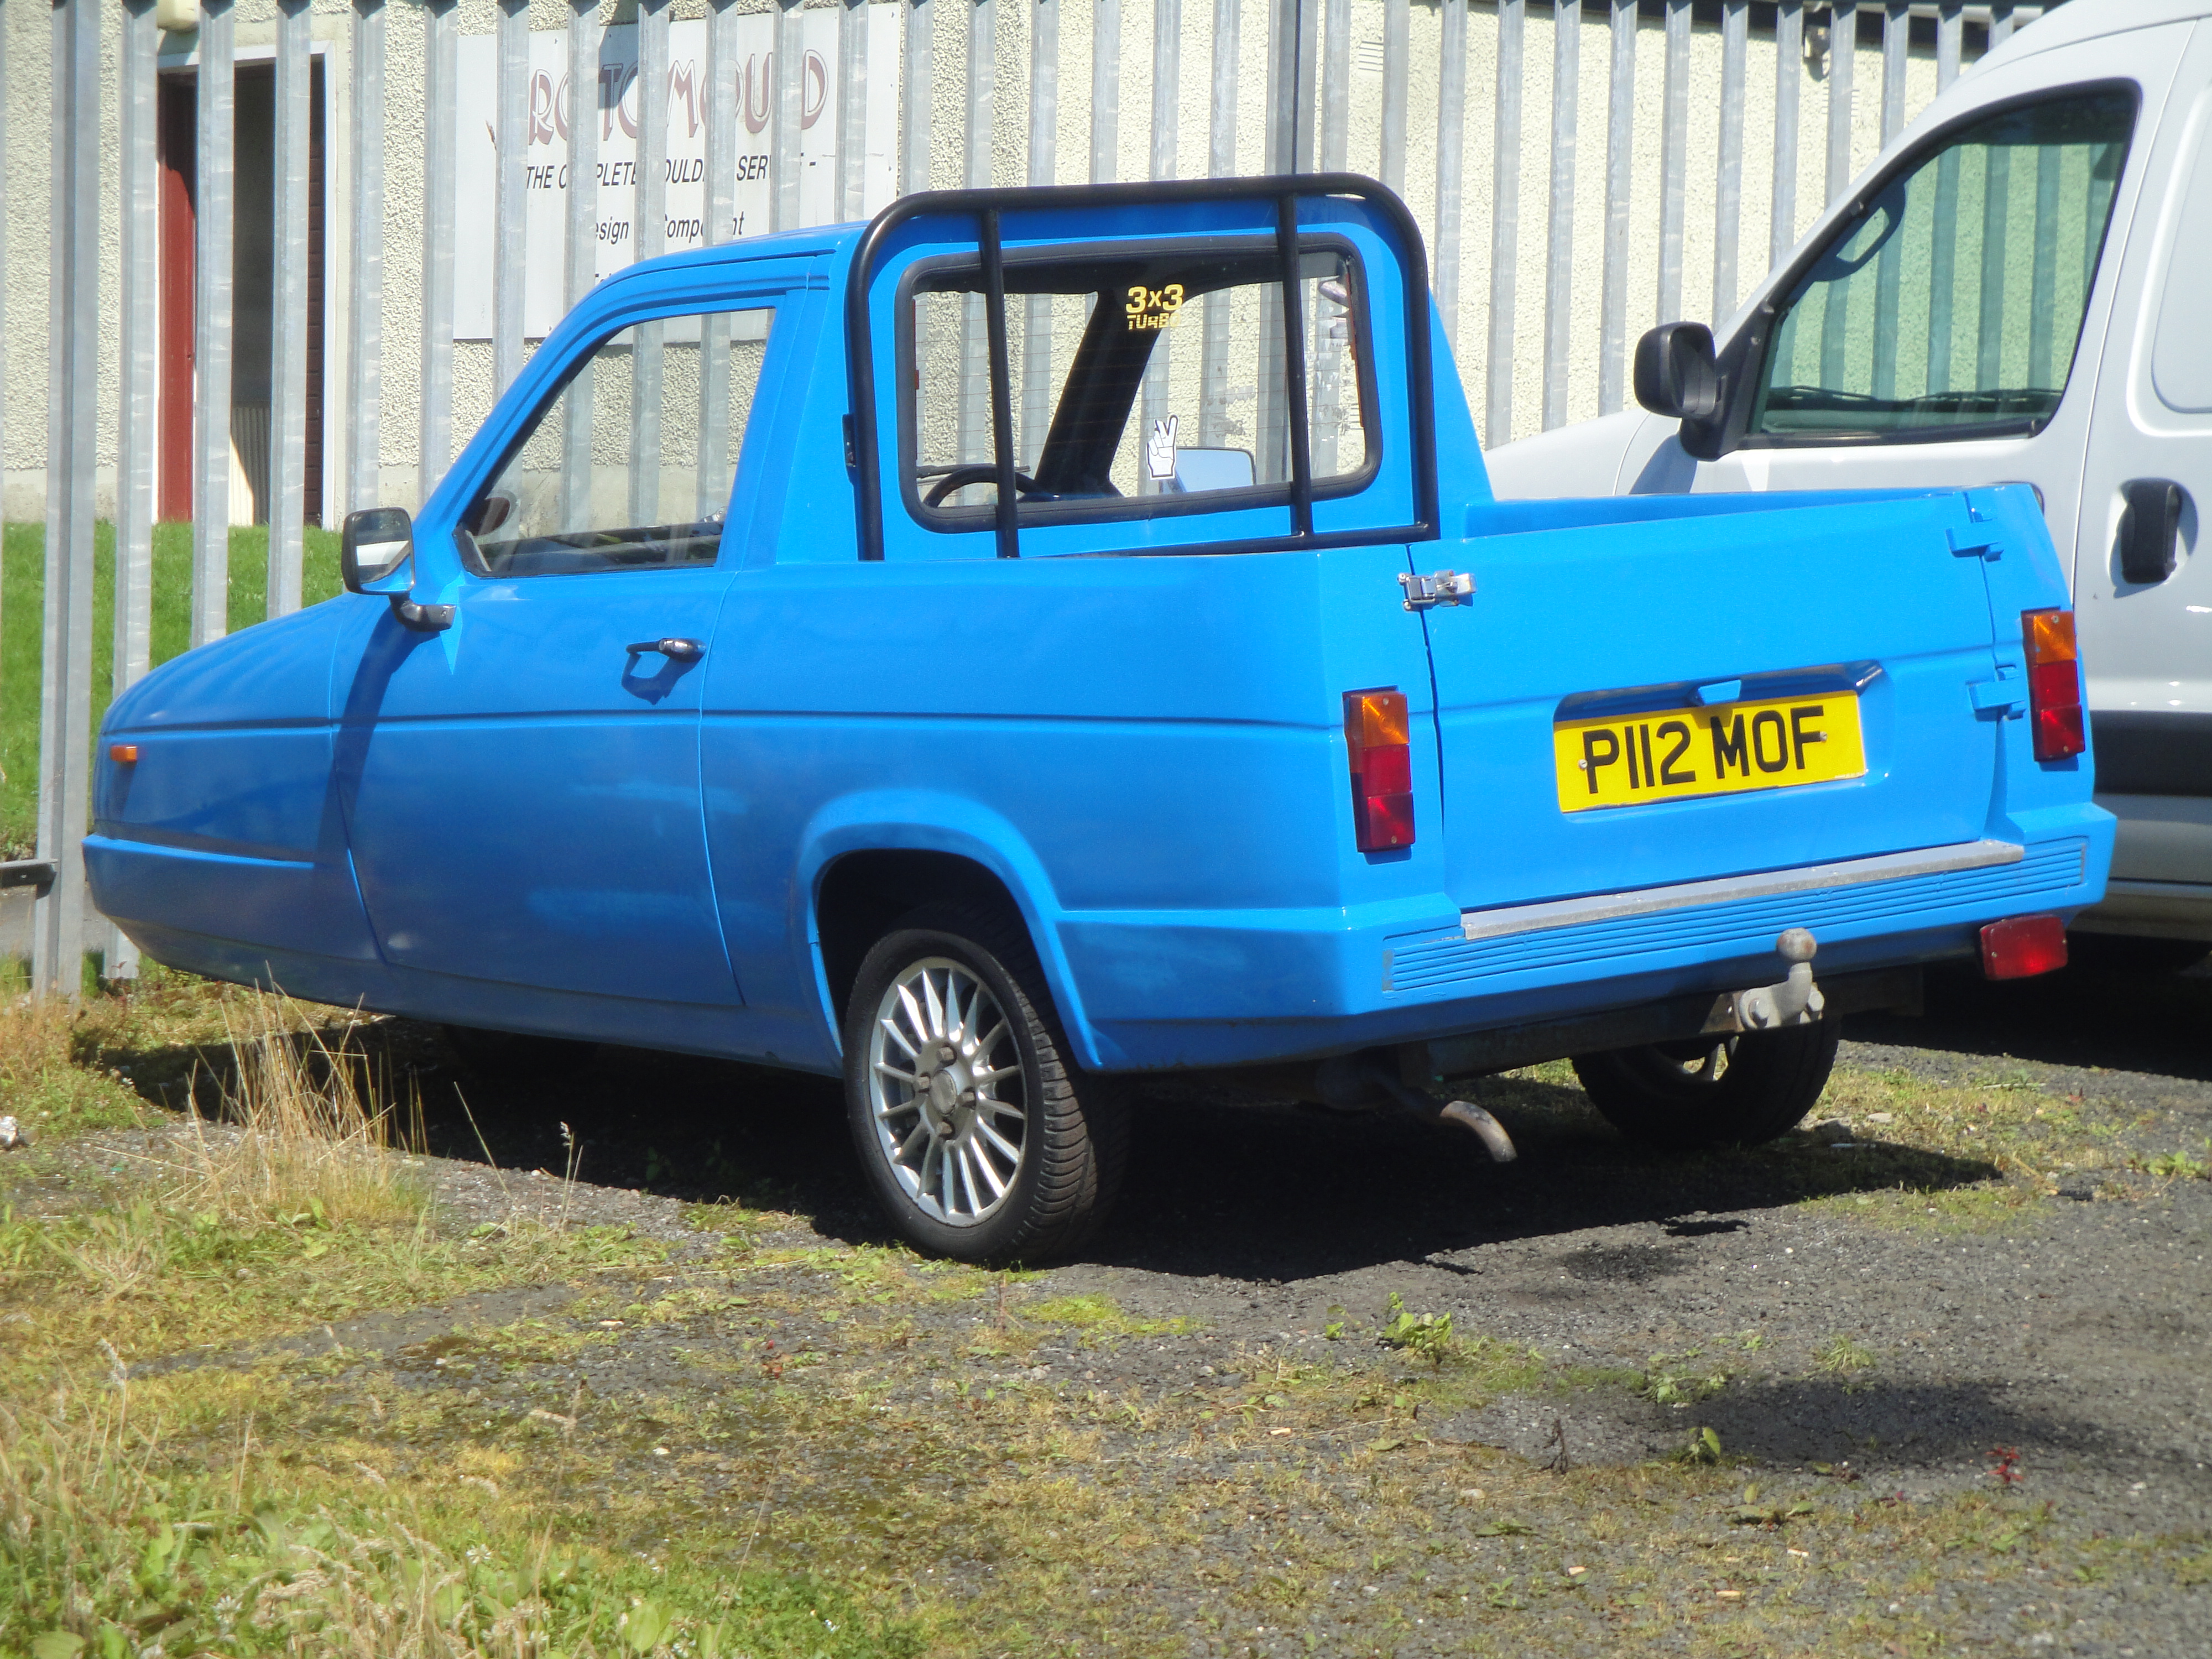 1997 Reliant Robin LX | Flickr - Photo Sharing!